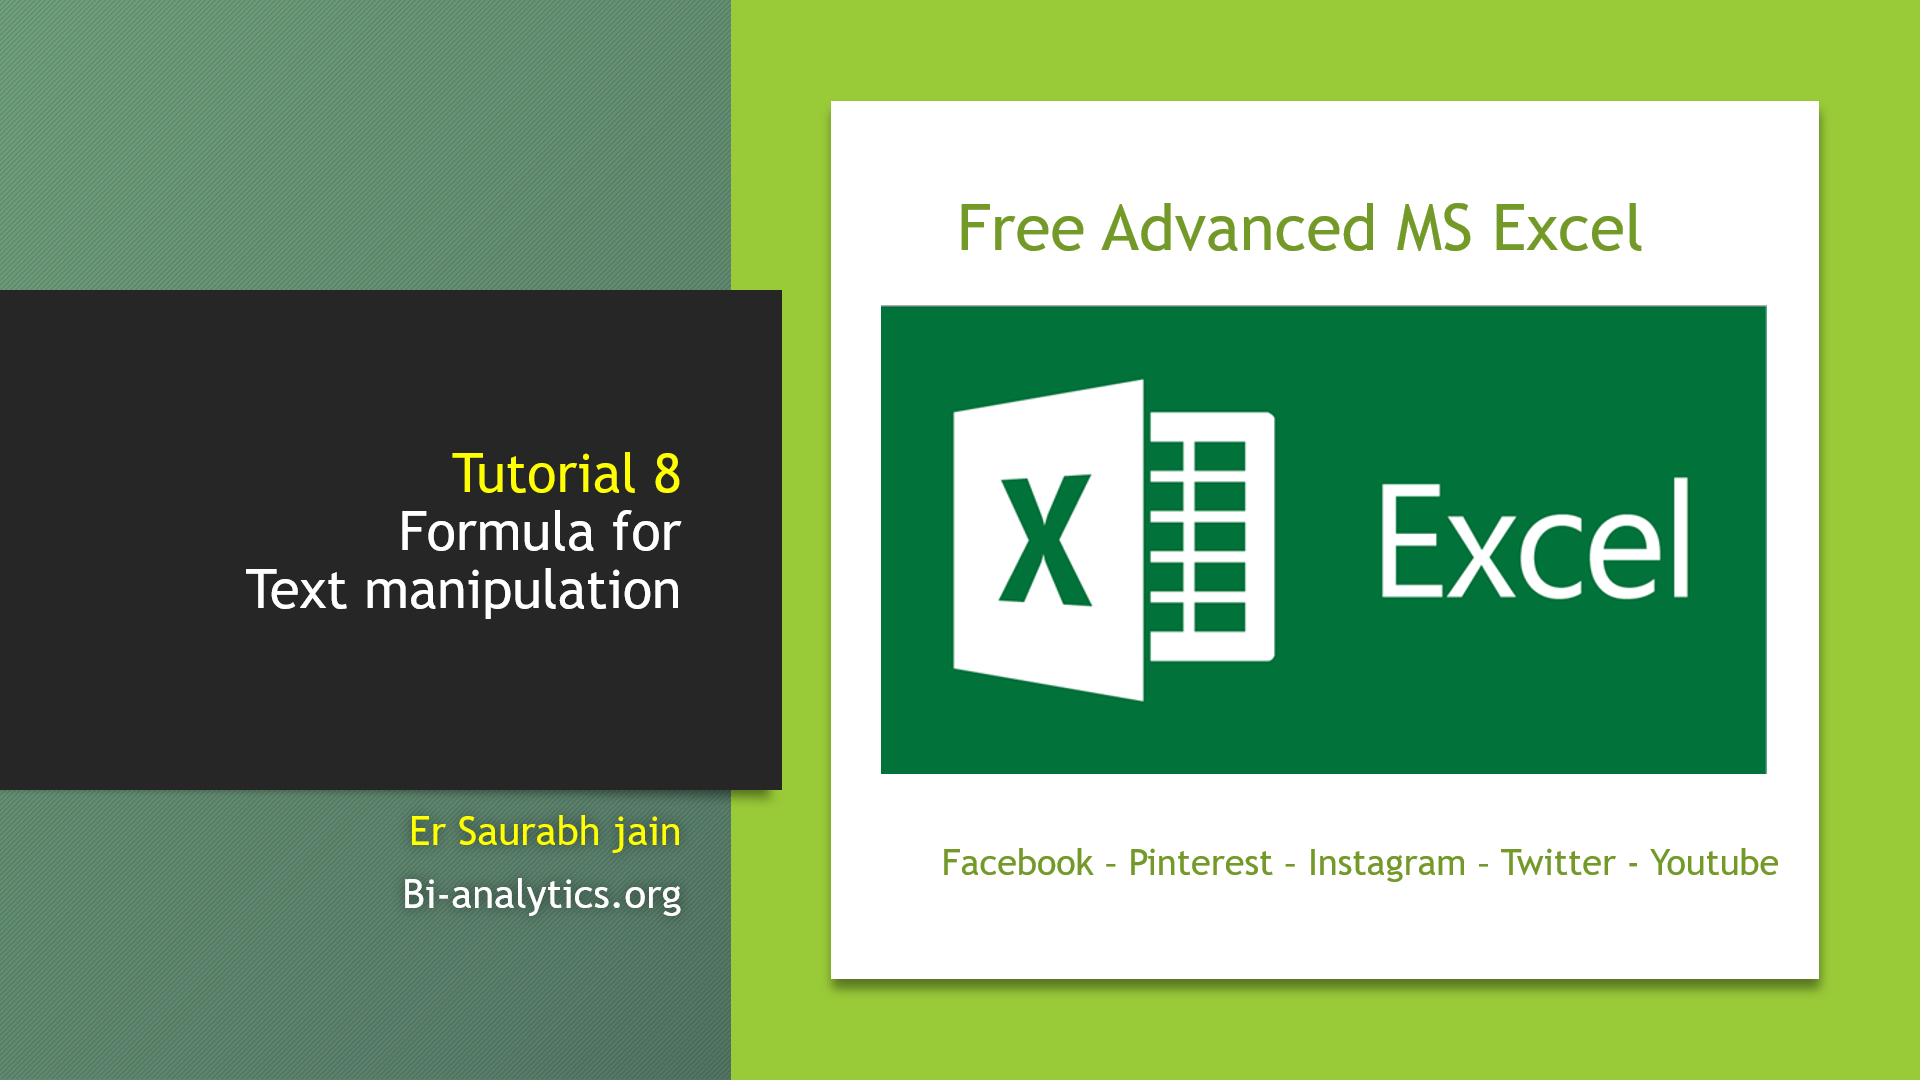 Tutorial 8 : Formulas for Text manipulation : Free advanced MS Excel course